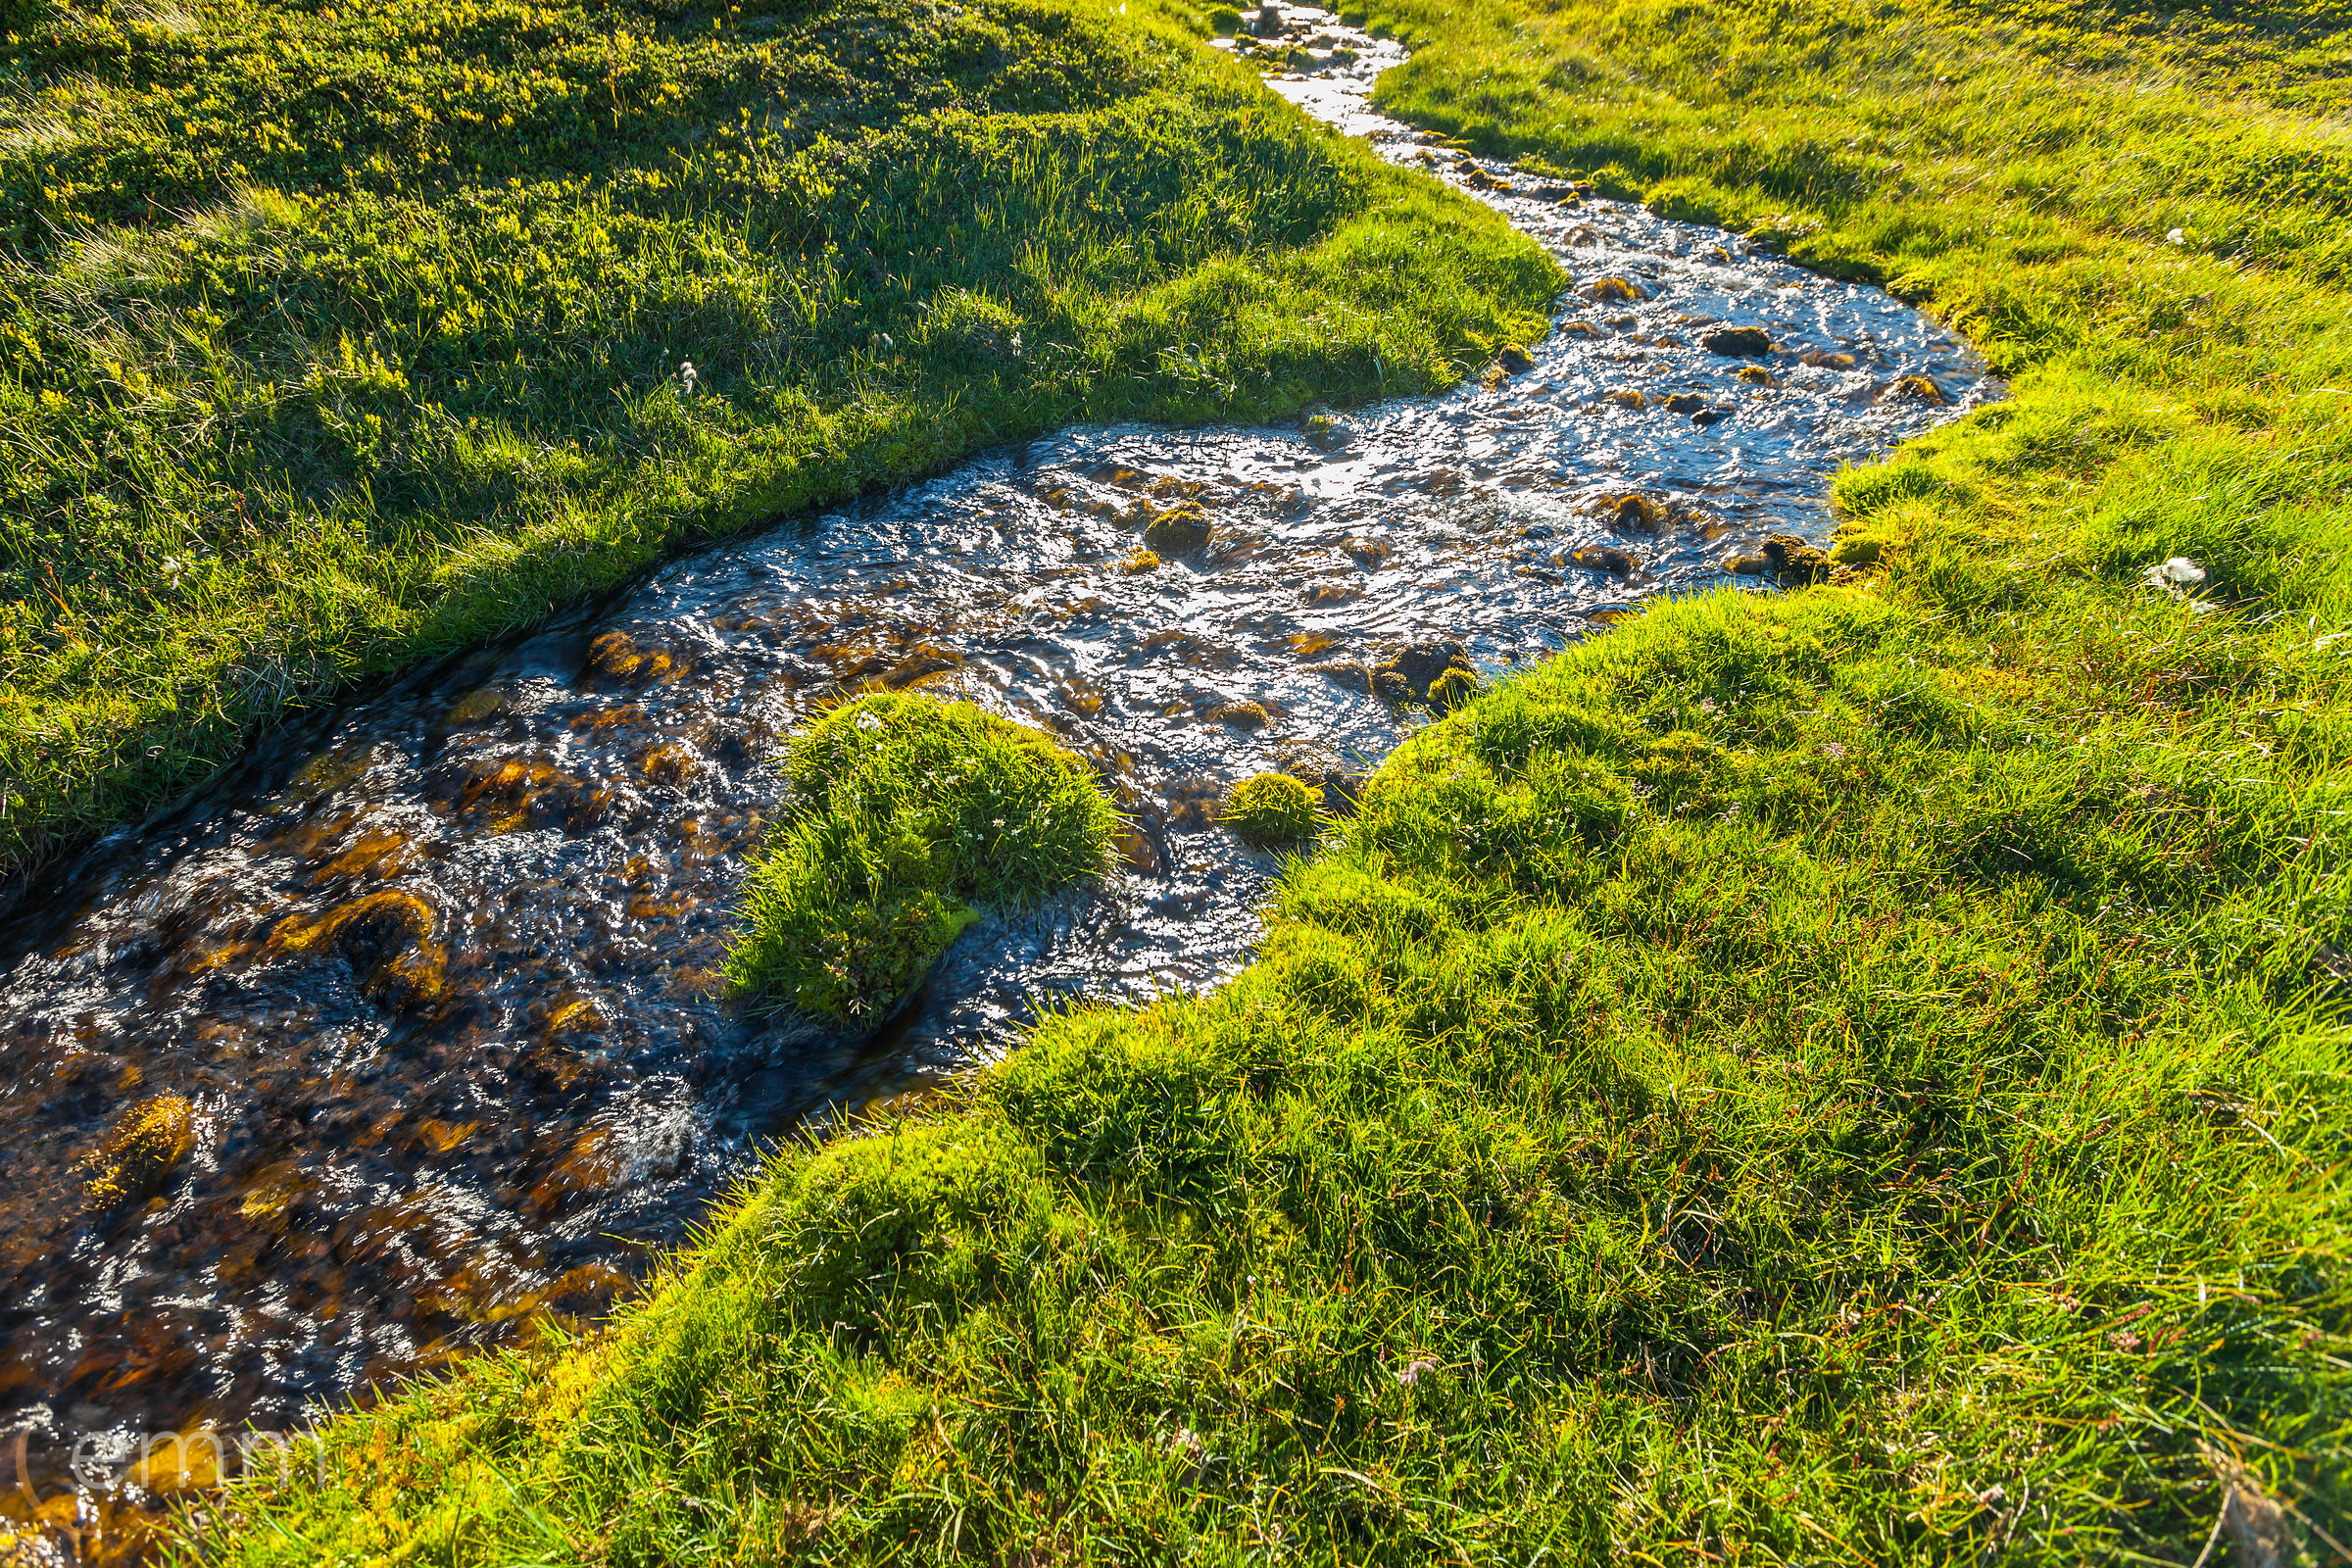 Grass_moss_and_water_in_west_Iceland_emm.is